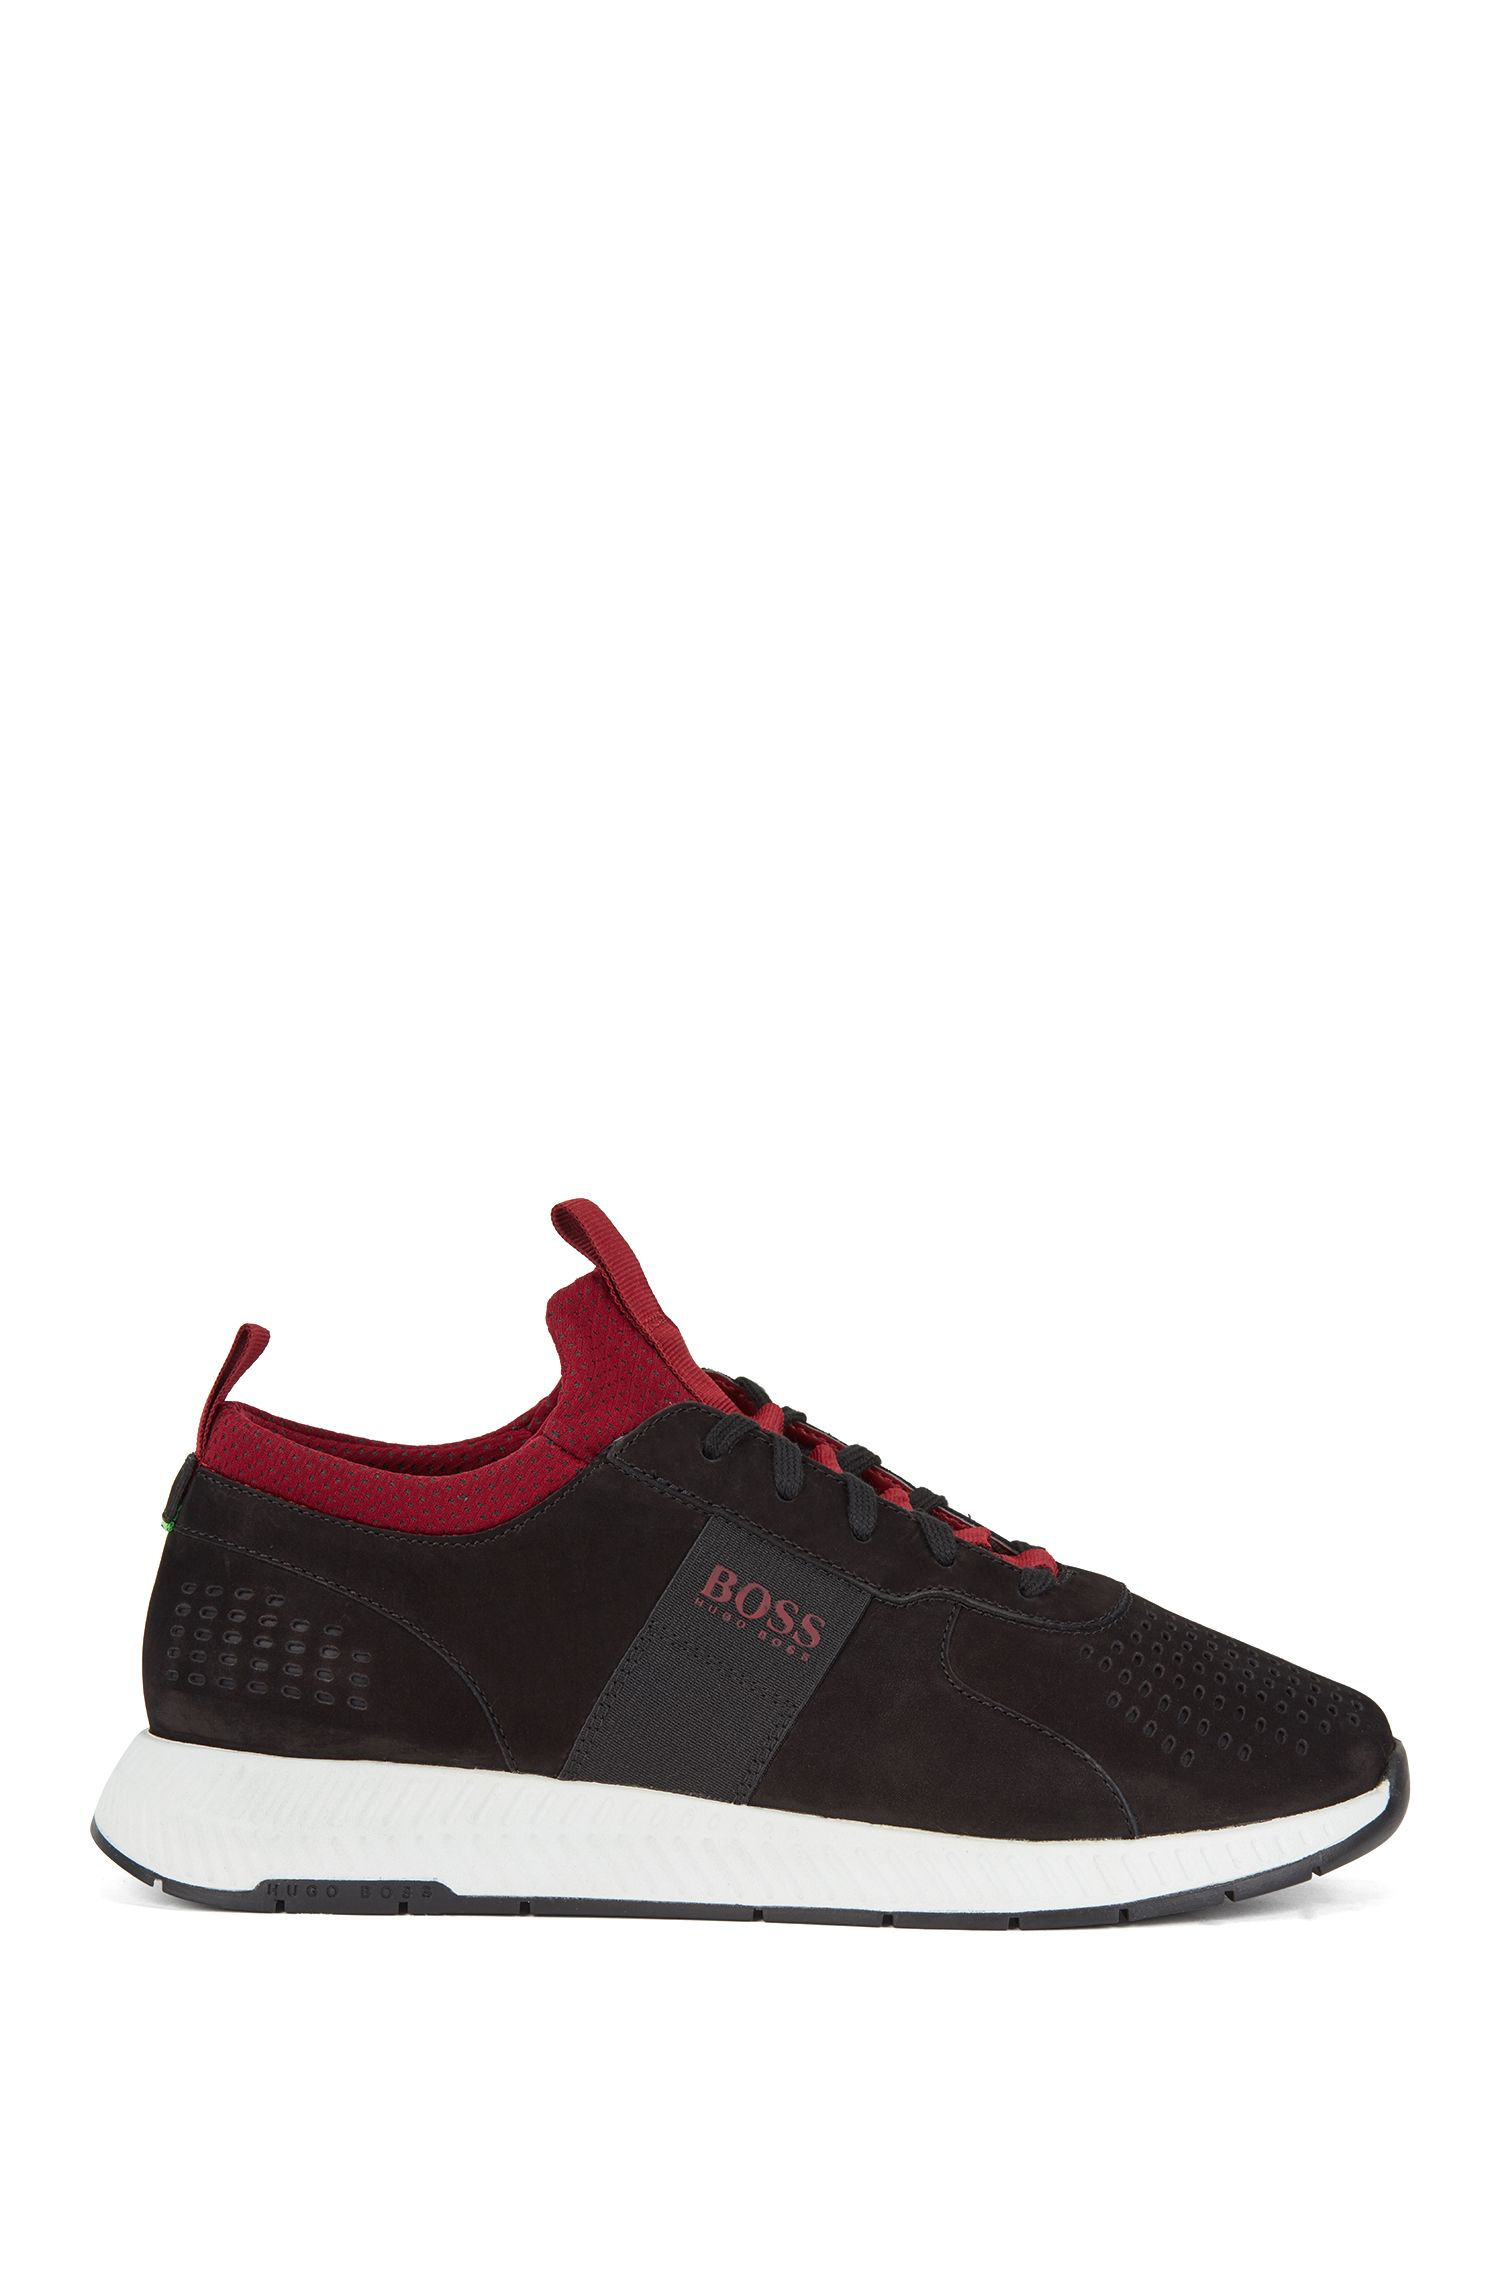 Running-inspired trainers in perforated nubuck leather BOSS